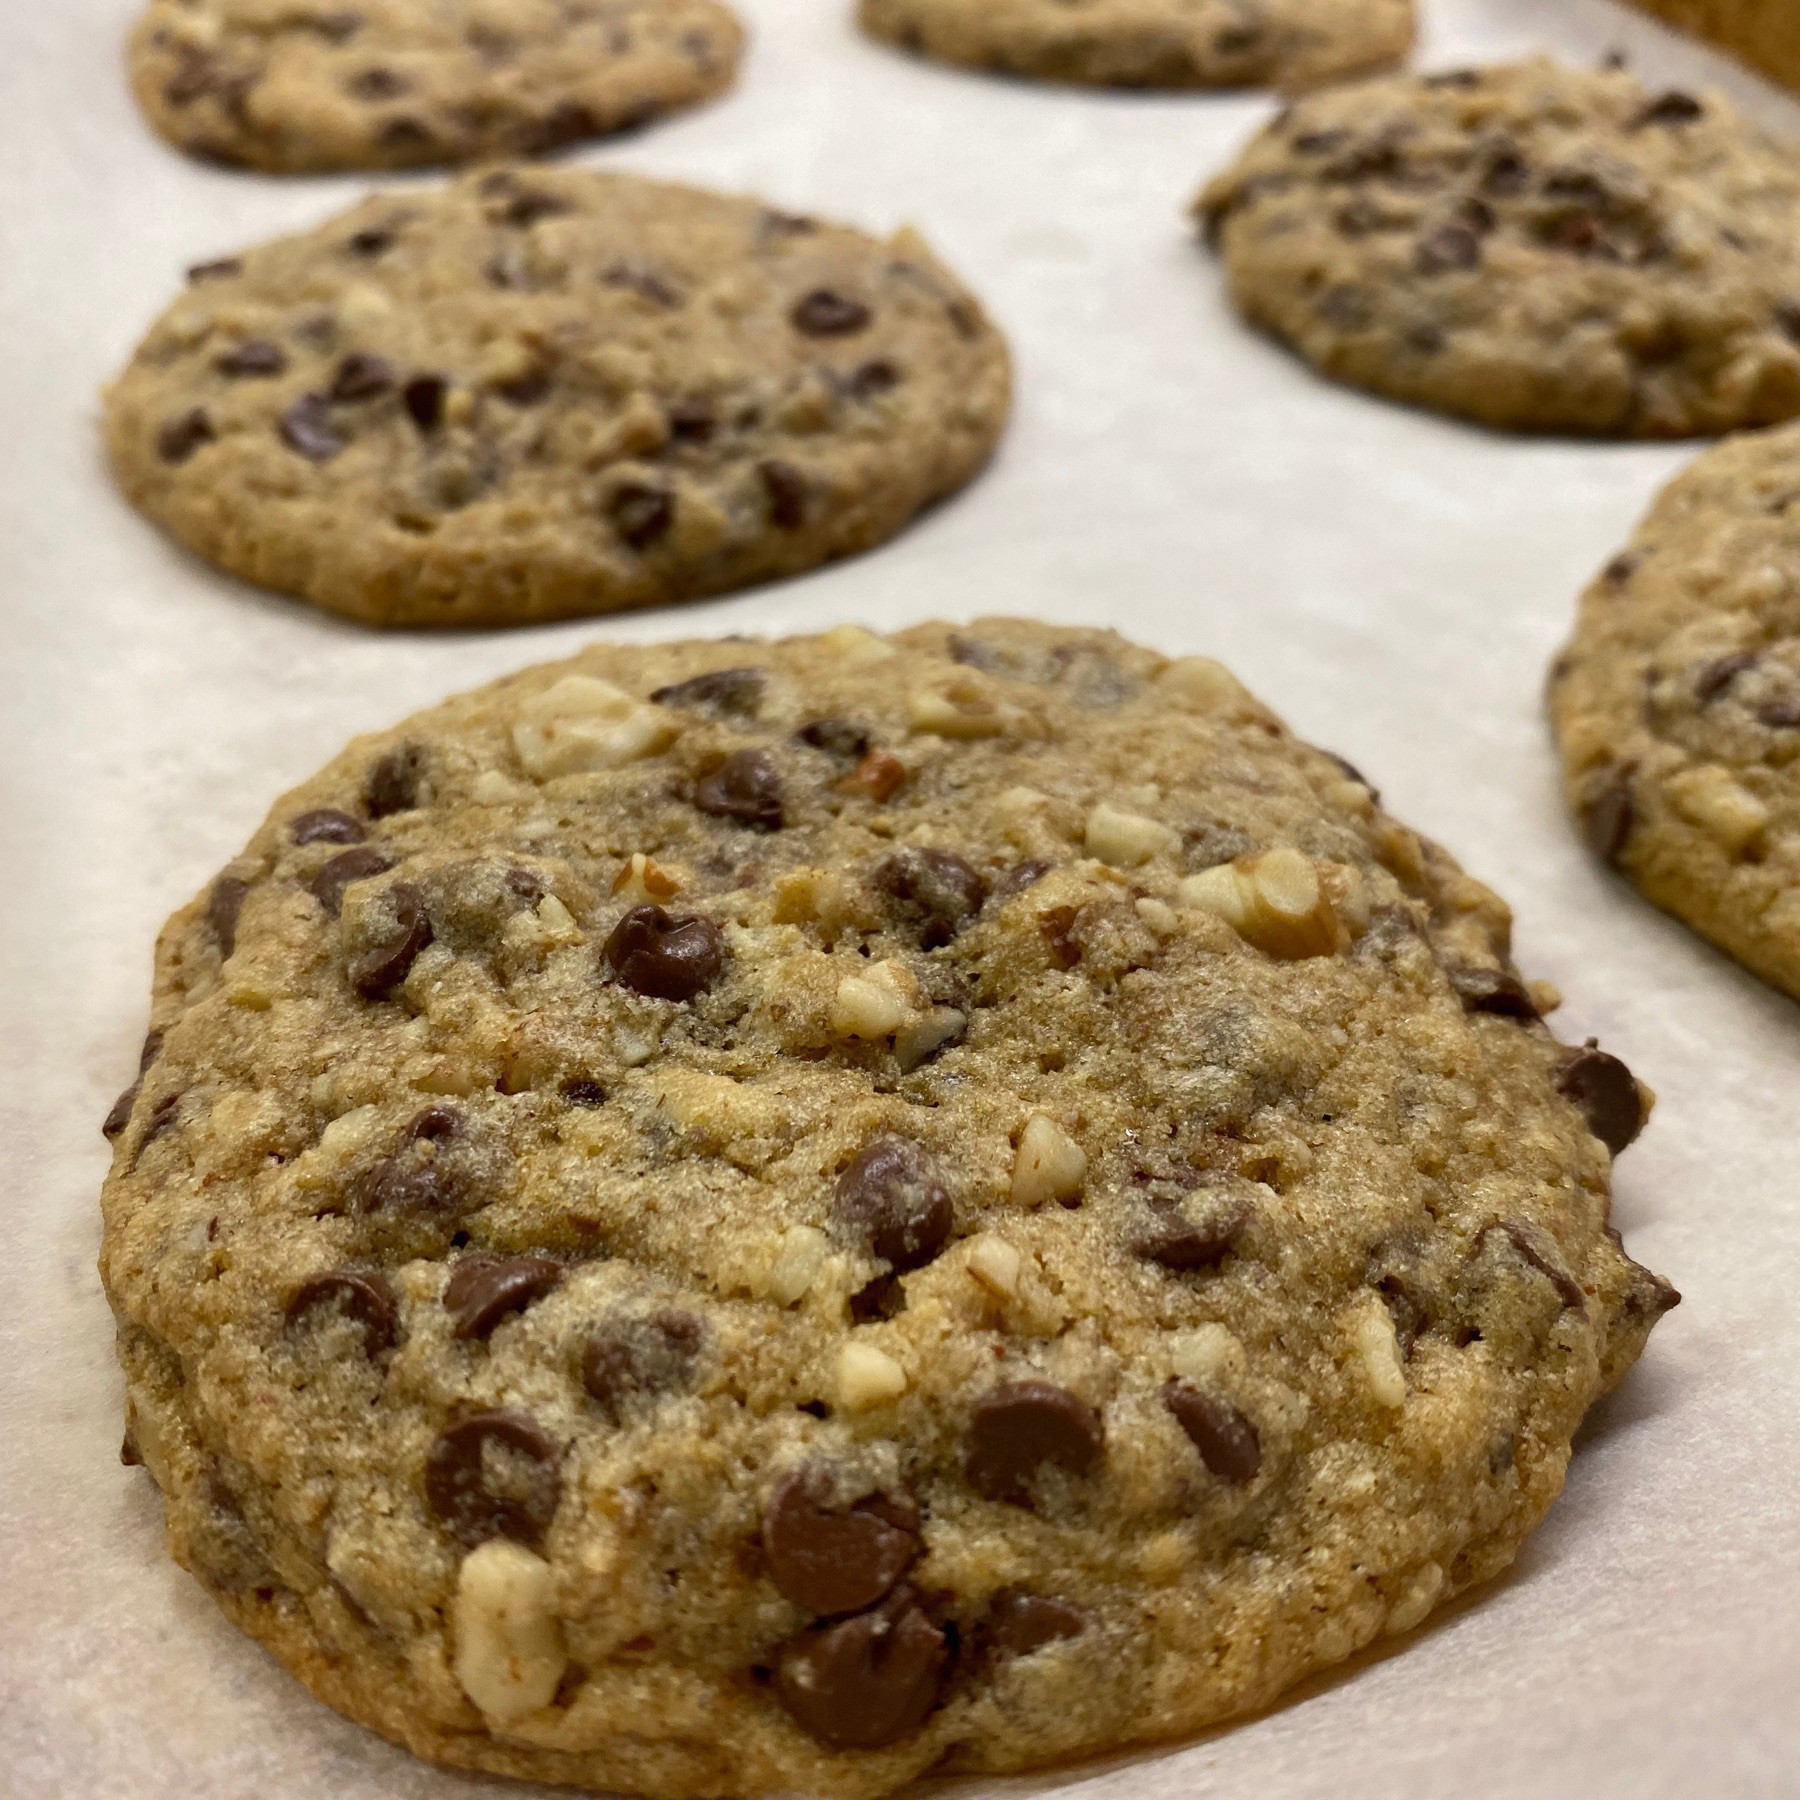 Chocolate chip cookes on baking sheet.